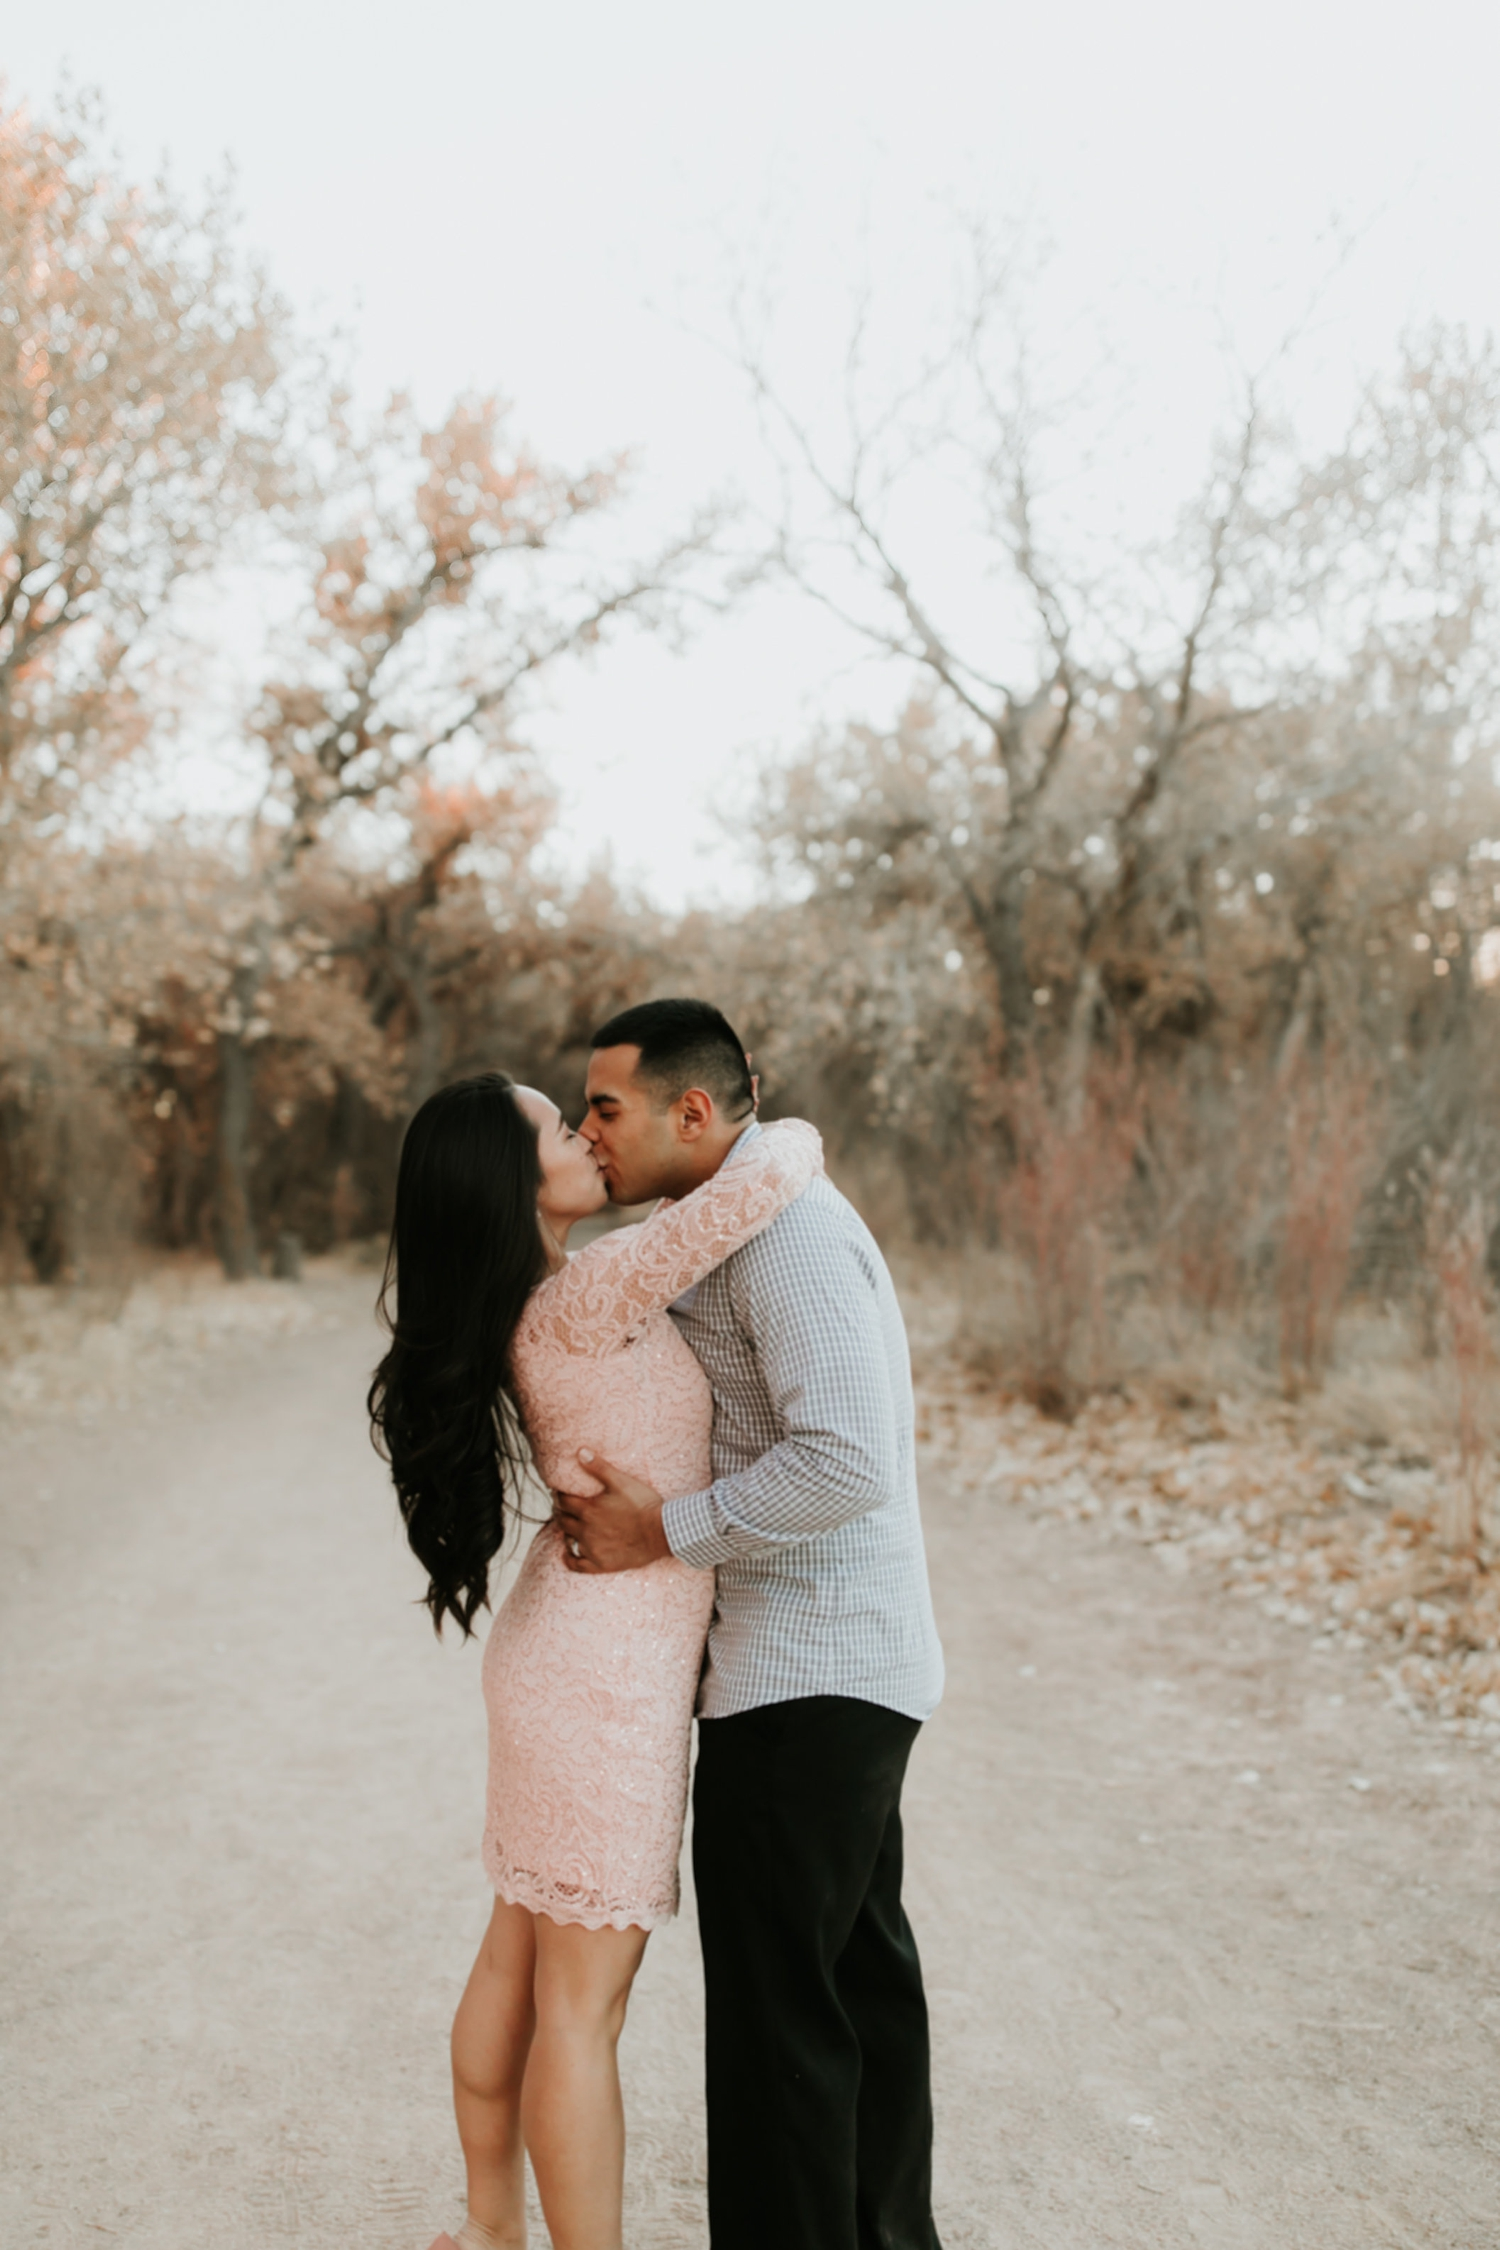 Alicia+lucia+photography+-+albuquerque+wedding+photographer+-+santa+fe+wedding+photography+-+new+mexico+wedding+photographer+-+albuquerque+winter+engagement+session_0021.jpg